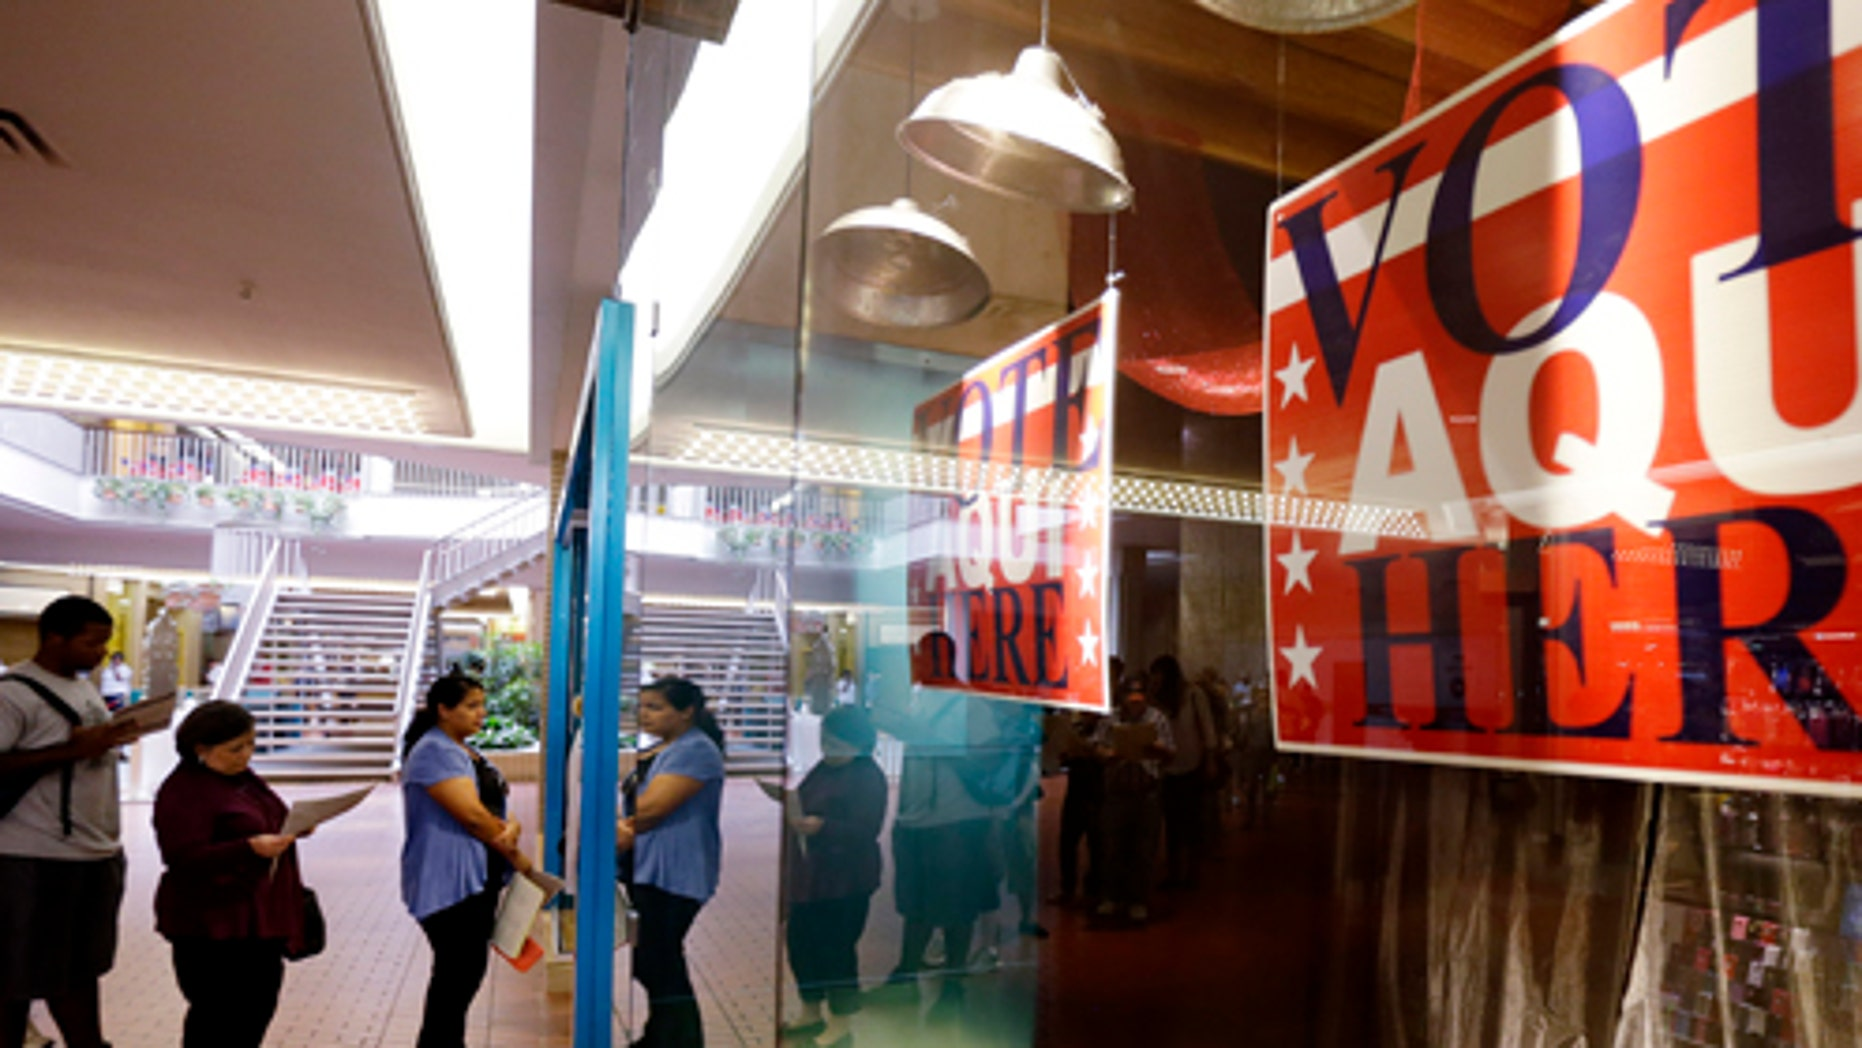 Voters wait in line at a polling place located inside a shopping mall on Election Day, 2012, in Austin, Texas.